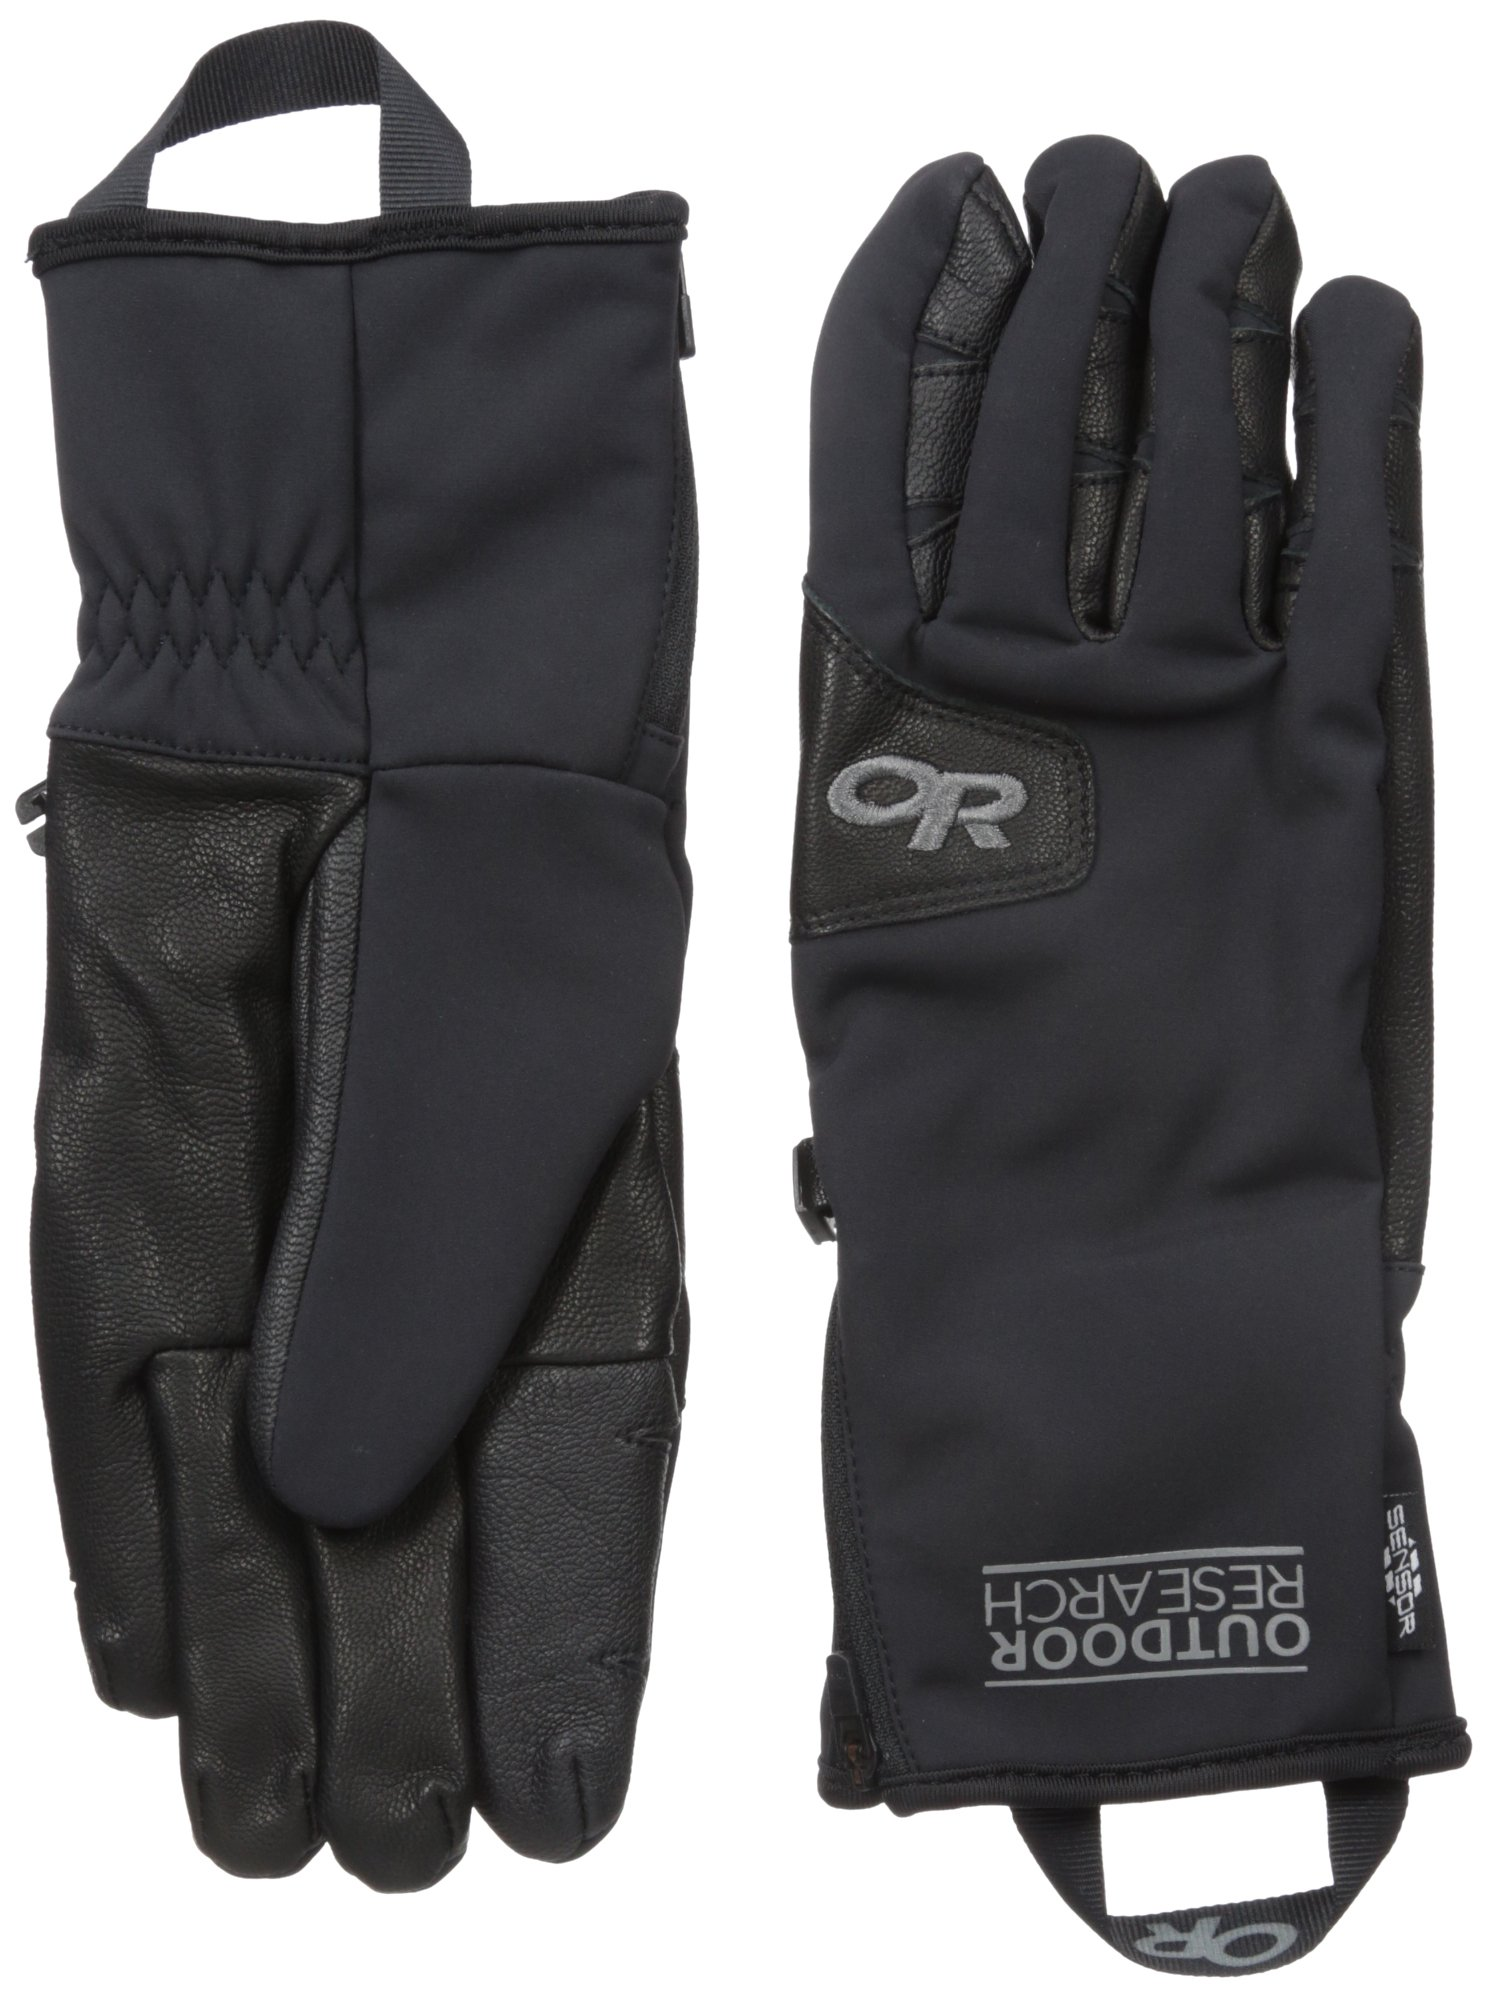 Outdoor Research Men's Stormtracker Sensor Gloves, Black, Medium